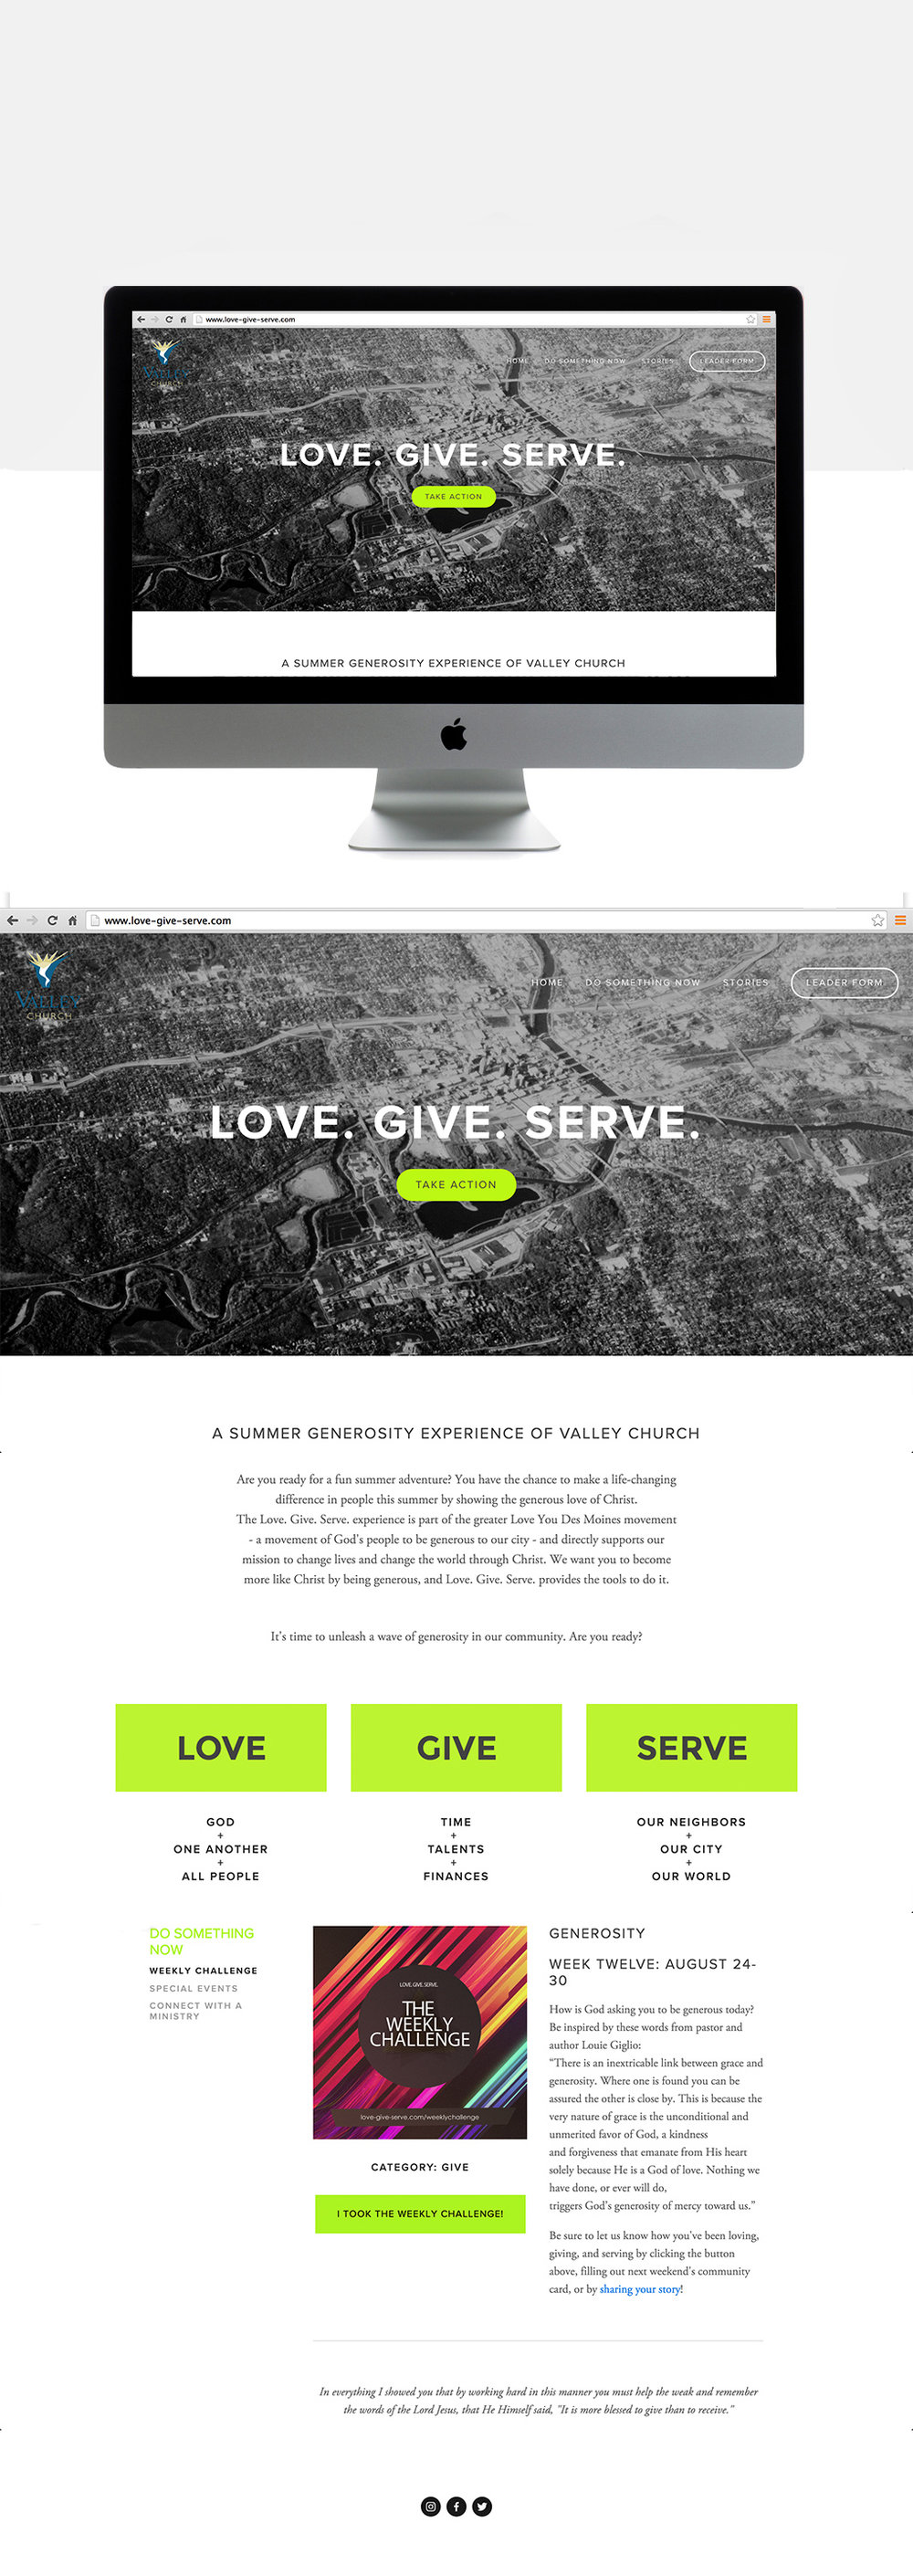 love give serve website board.jpg